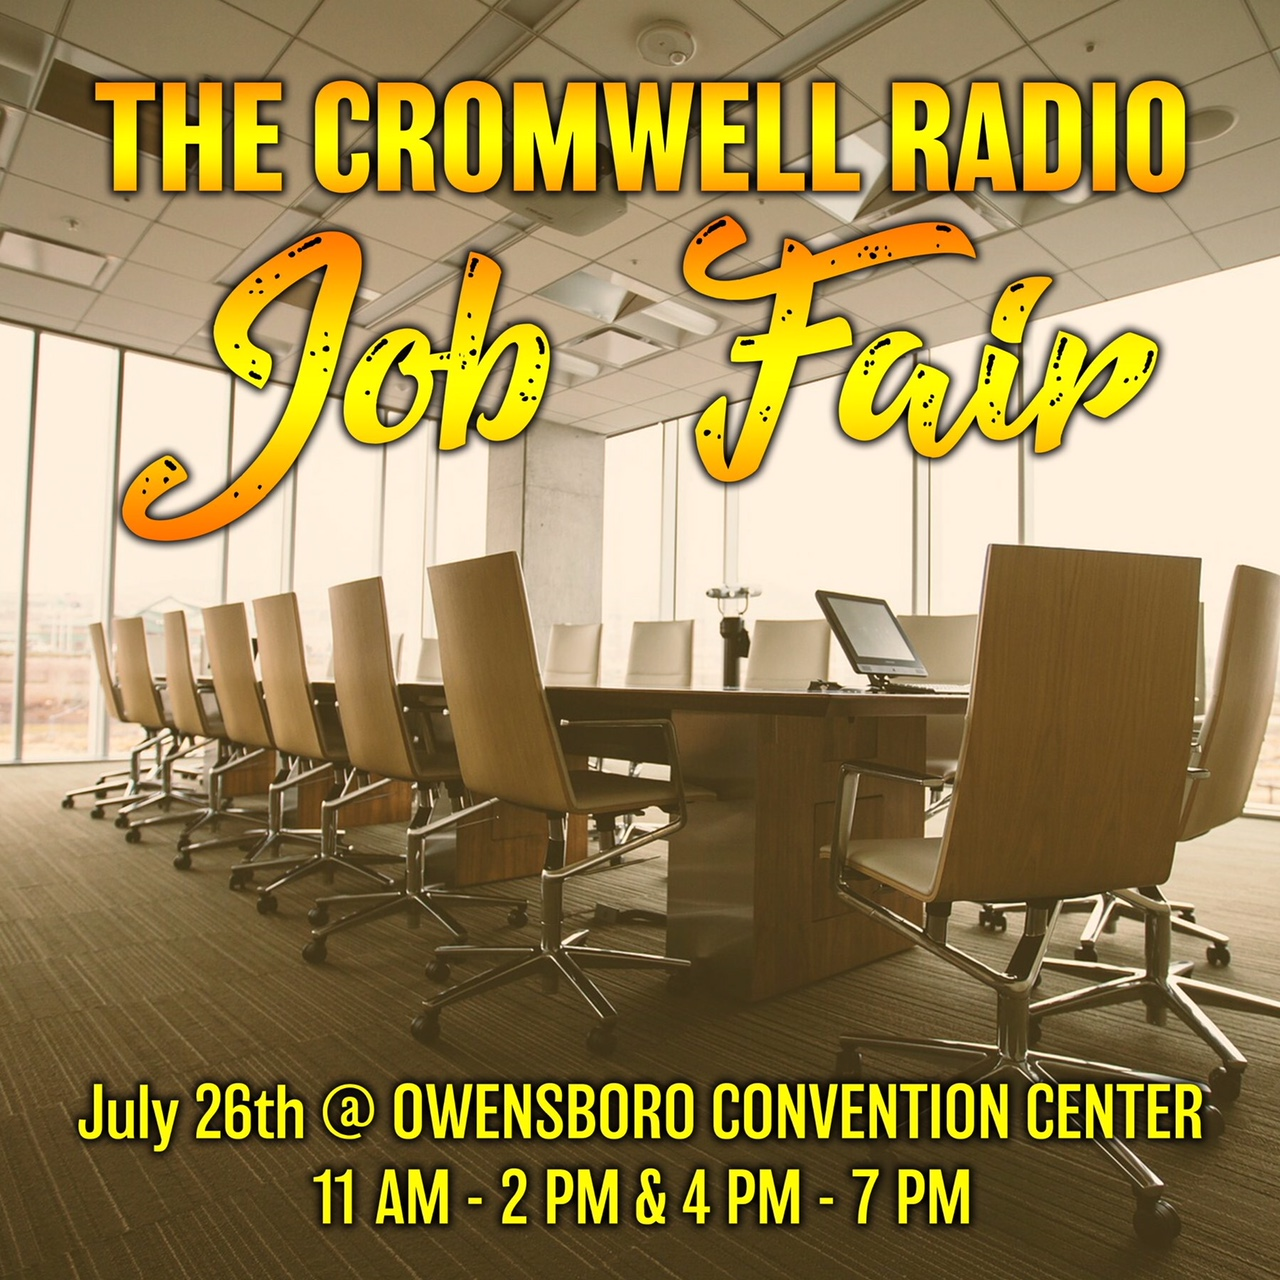 Job Fair Set for Thursday July 26th at Convention Center